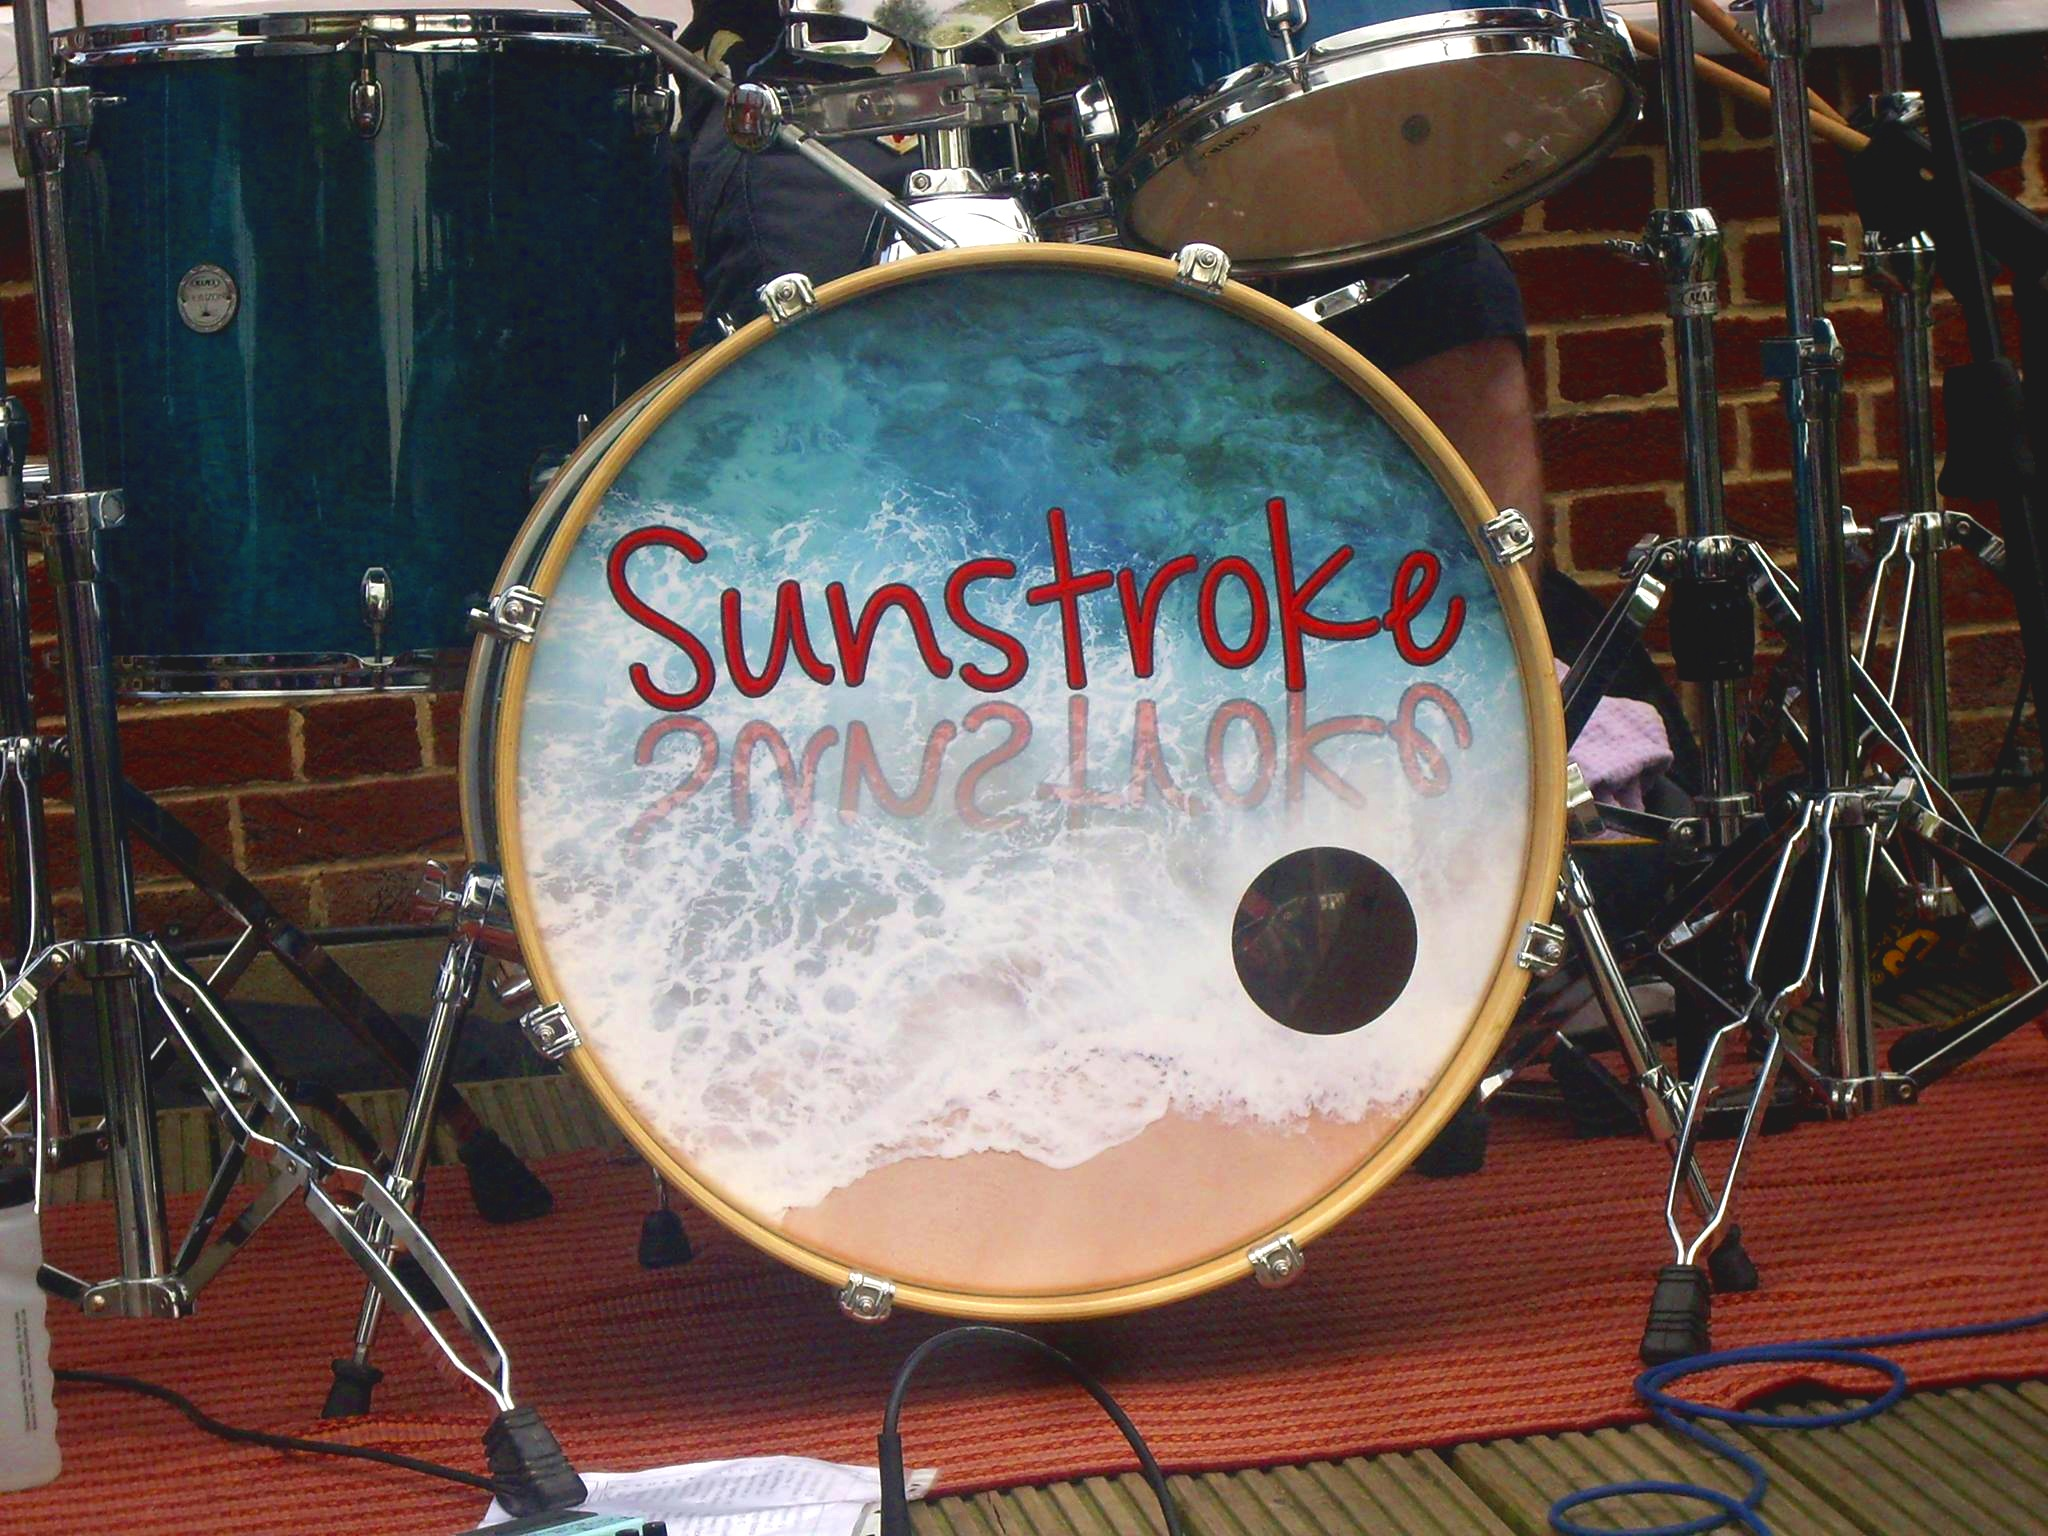 Sunstroke - Visit WebsiteSunstroke are one of Dorset and Hampshire's premier party and wedding bands. Theyperform classic songs from the 1950's right up to the present day taking in a variety of styles.The Beatles to The Black Keys, Elvis to Ed Sheeran - they've got it covered.